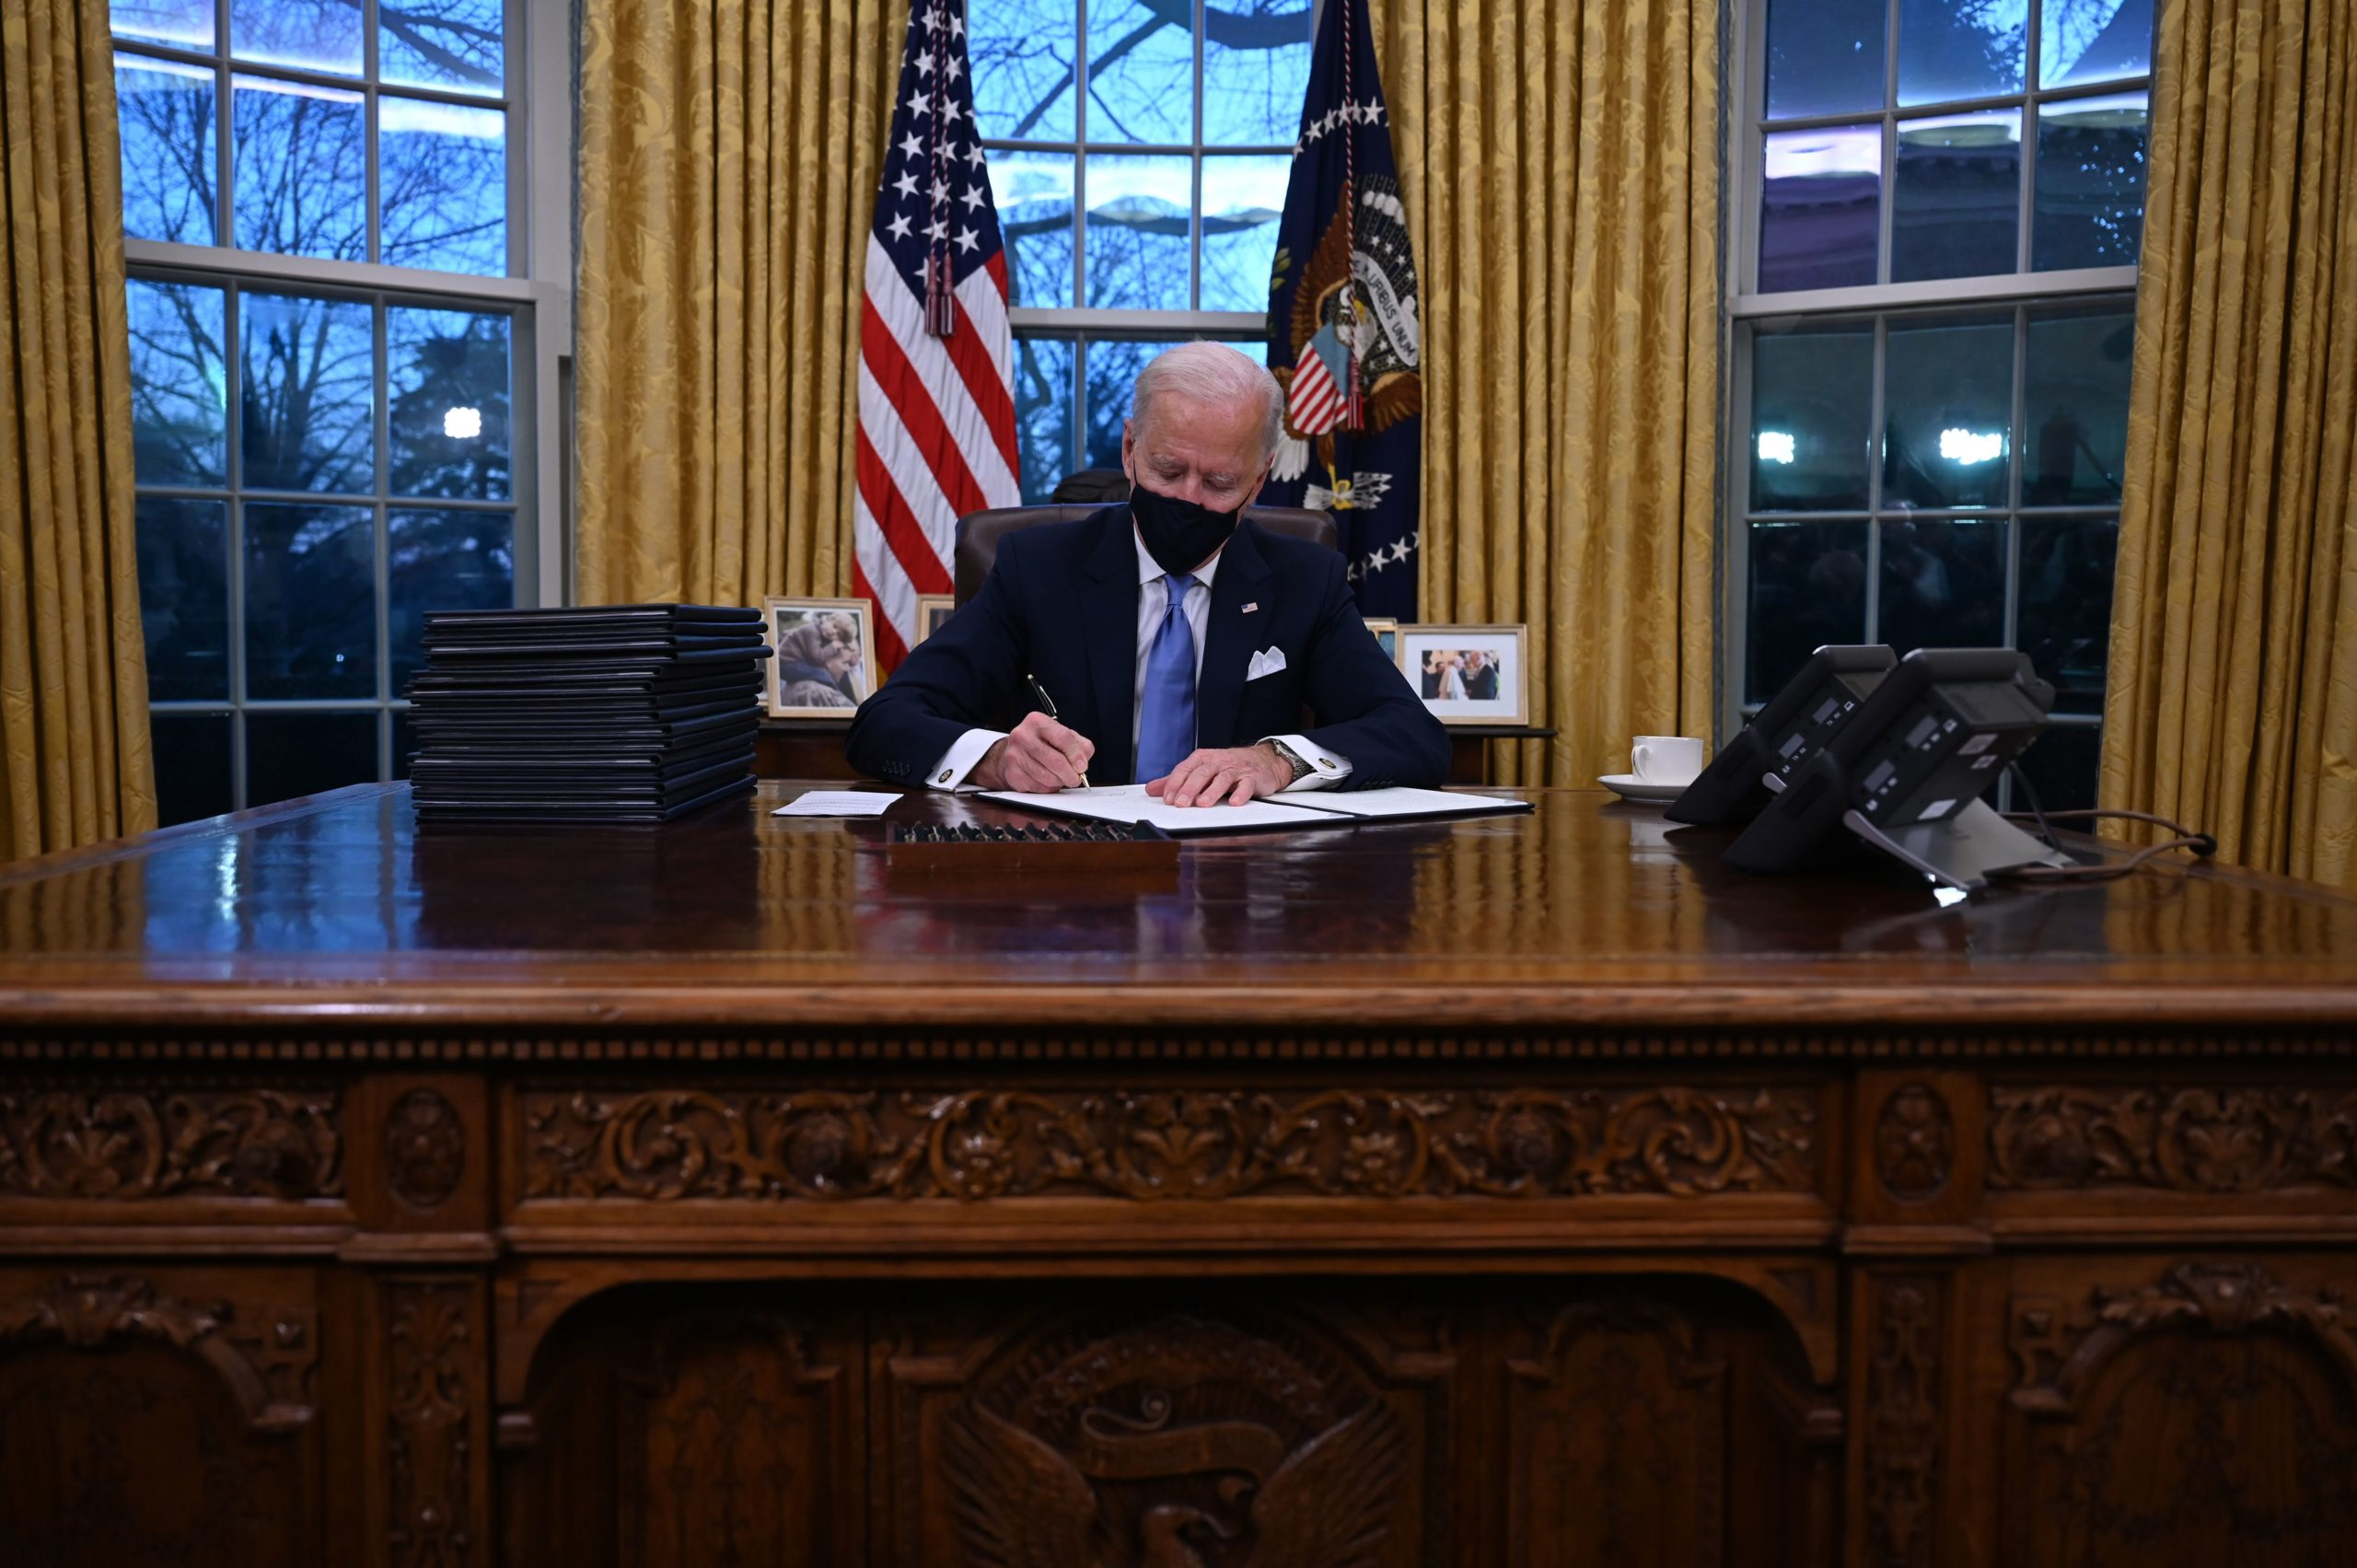 President Joe Biden signs a series of executive orders in the Oval Office on Jan. 20. (Jim Watson/AFP via Getty Images)